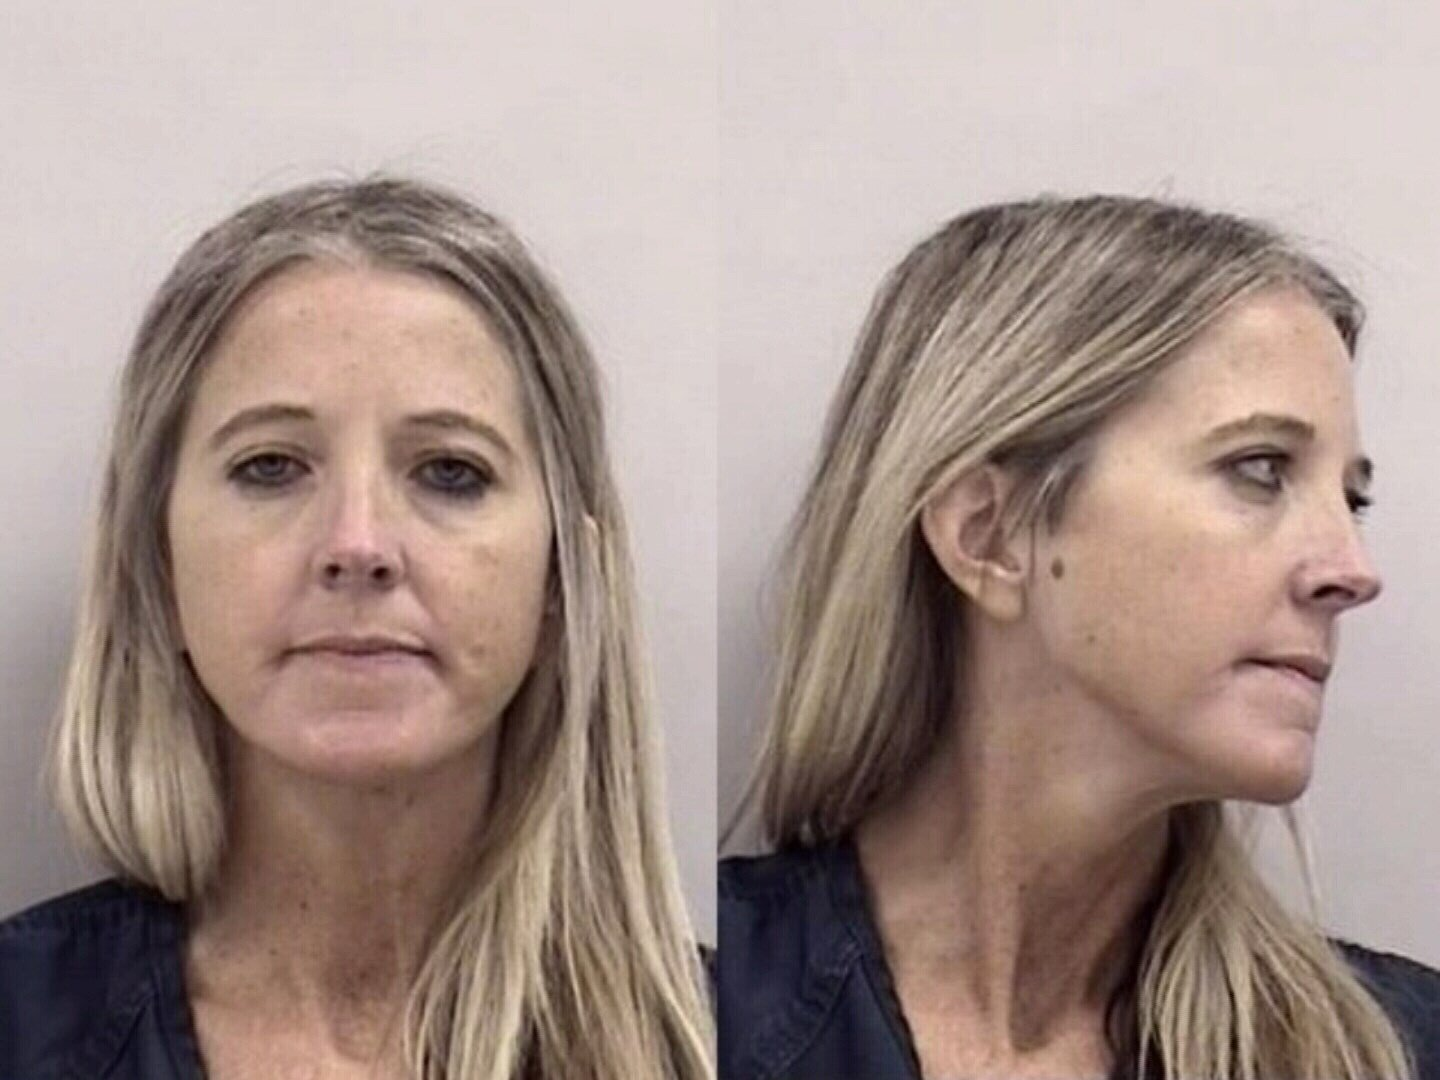 Holly Dalton is a former realtor accused of keeping thousands of dollars of rent payments. She settled a lawsuit against El Paso County after Dalton claims she was choked by another inmate in a courthouse holding cell